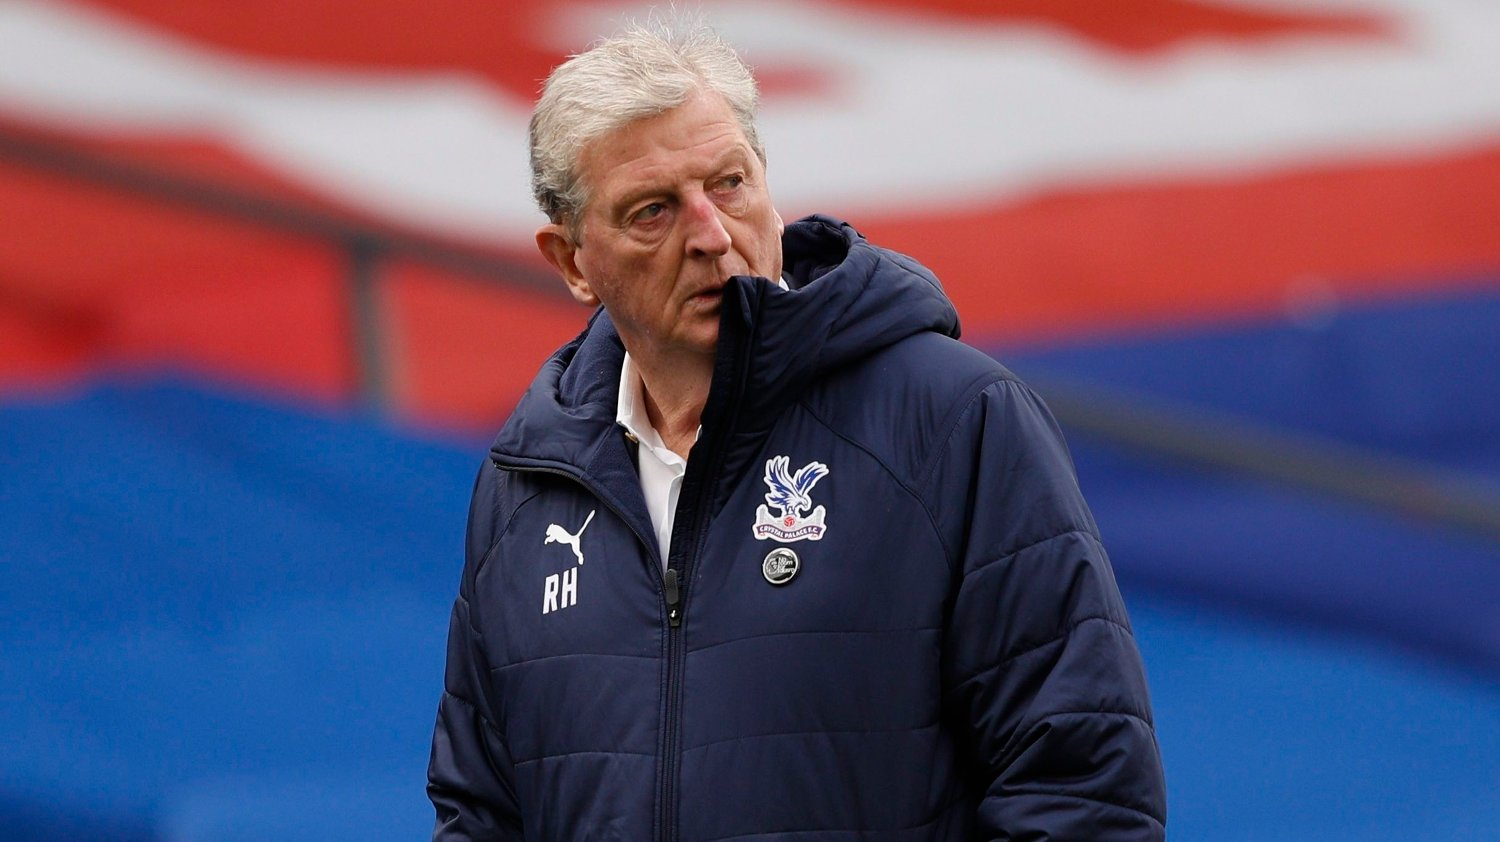 Crystal Palace's manager Roy Hodgson looks around as the half time whistle goes during an English Premier League soccer match between Crystal Palace and Brighton at the Selhurst Park stadium in London, England, Sunday Oct. 18, 2020.